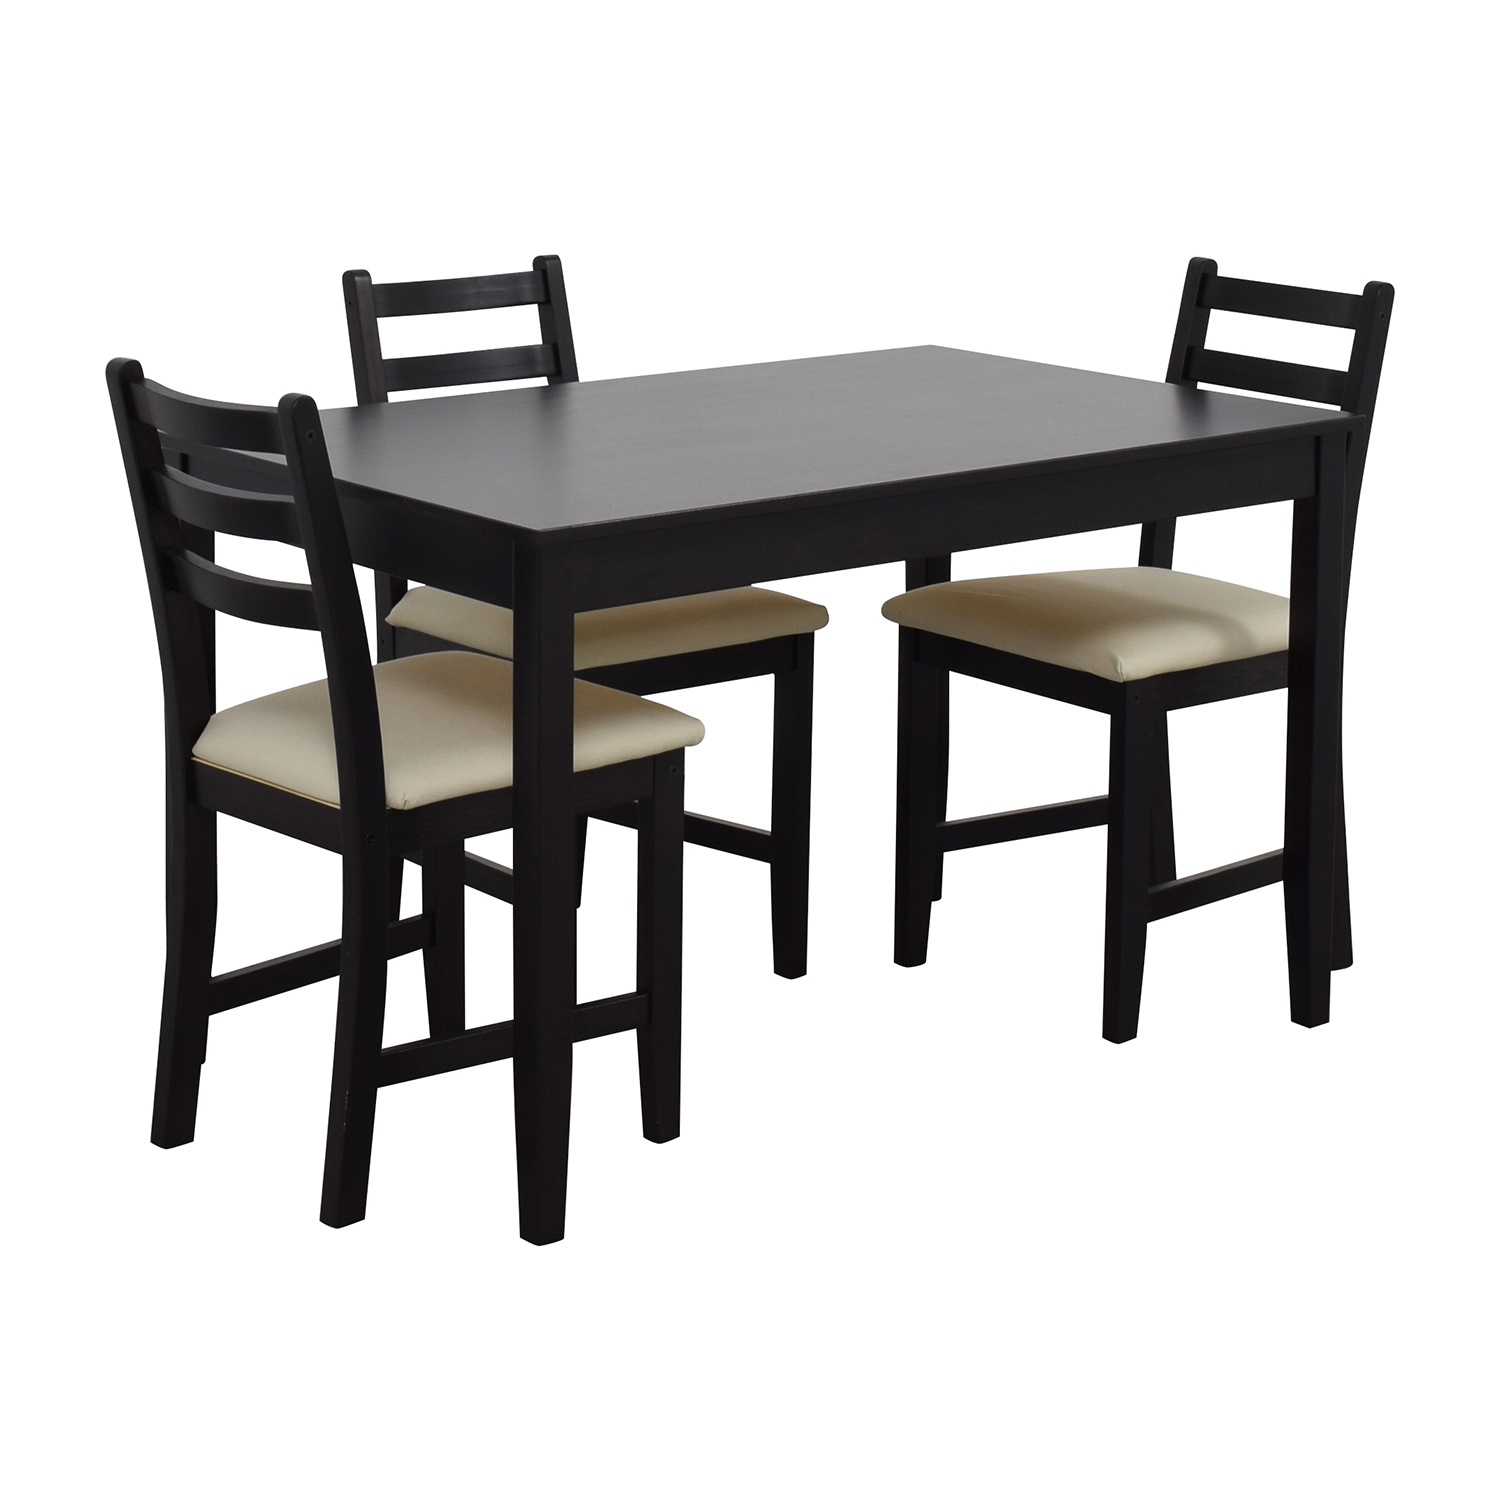 ... IKEA Wood Dining Set With Three Chairs IKEA ...